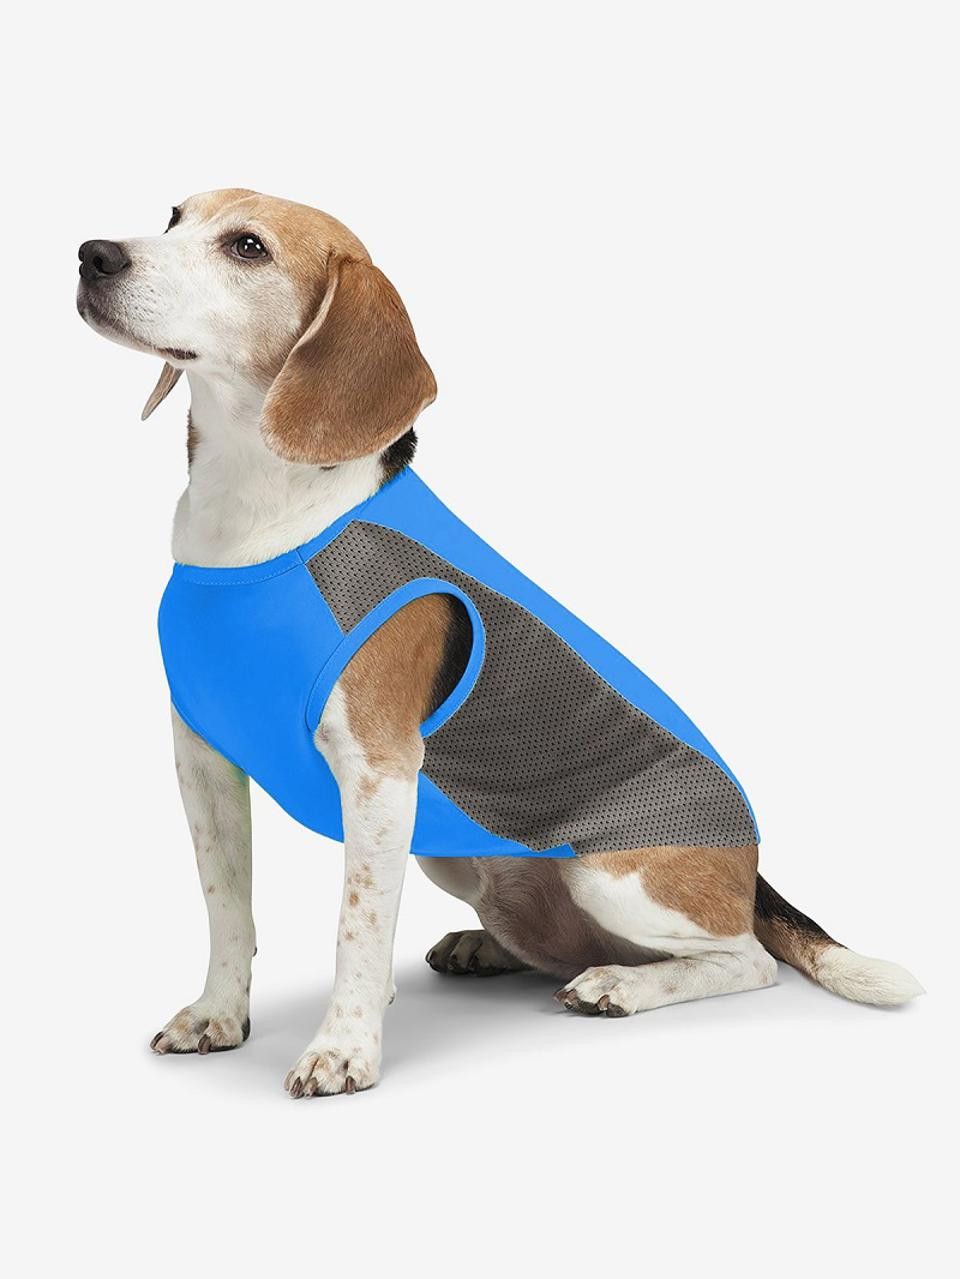 Insect Shield dog gear